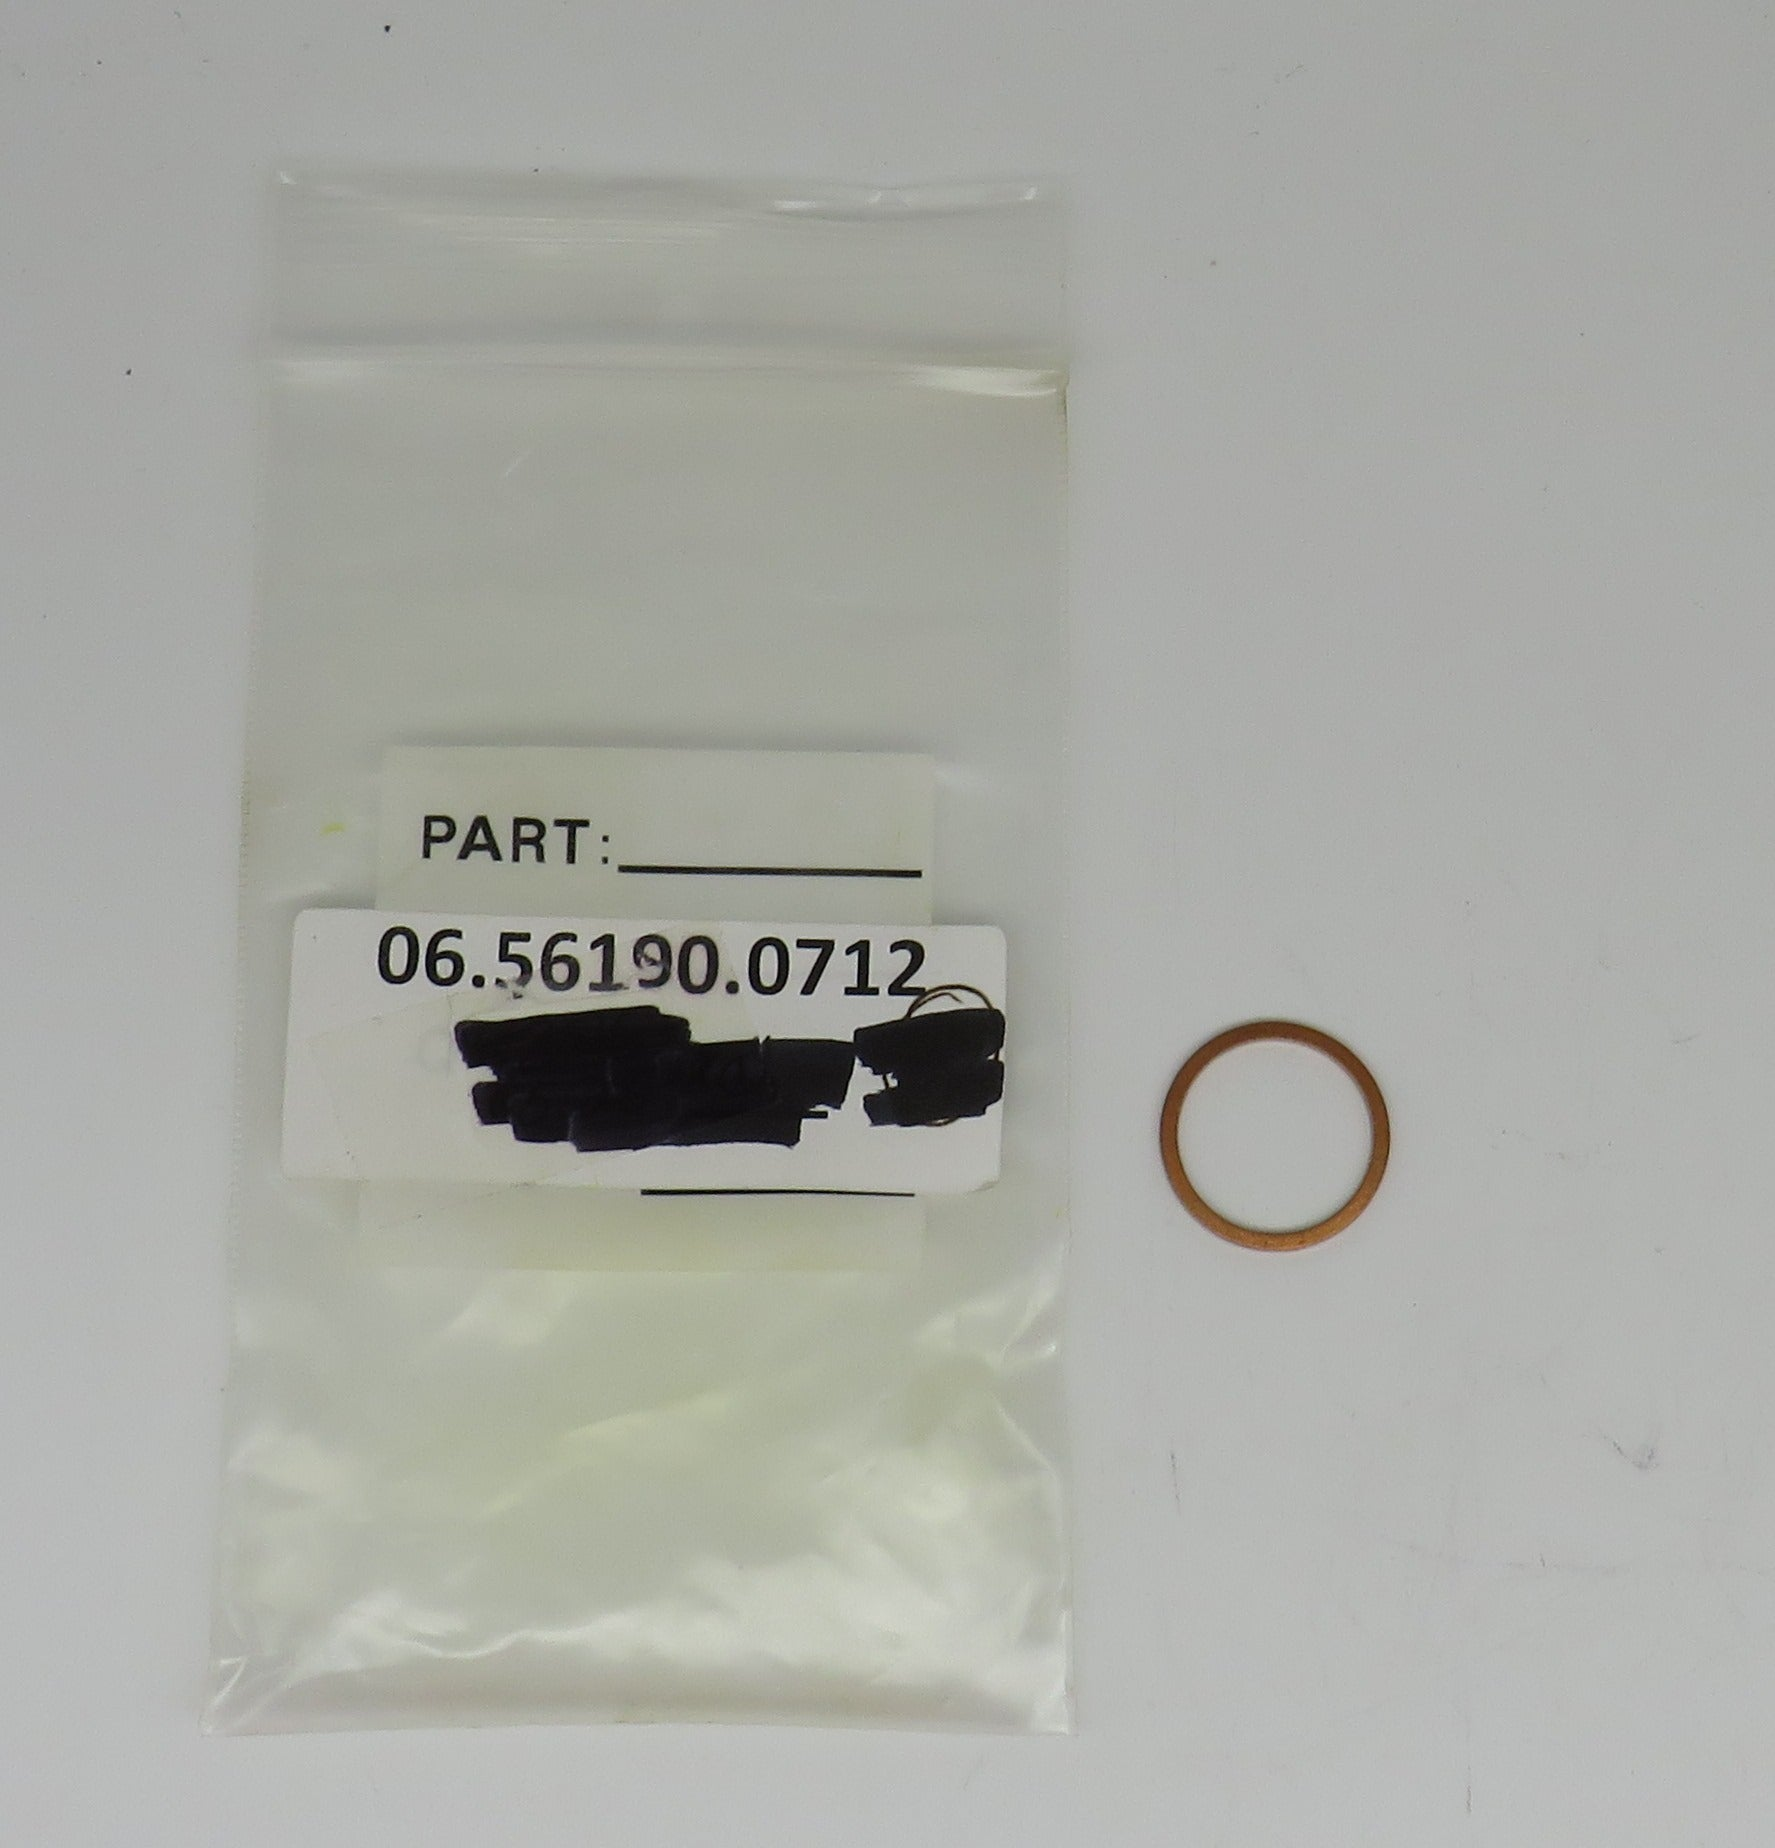 6-56190-0712 MAN Copper Crush Washer18mm x 22mm For Drain Plug